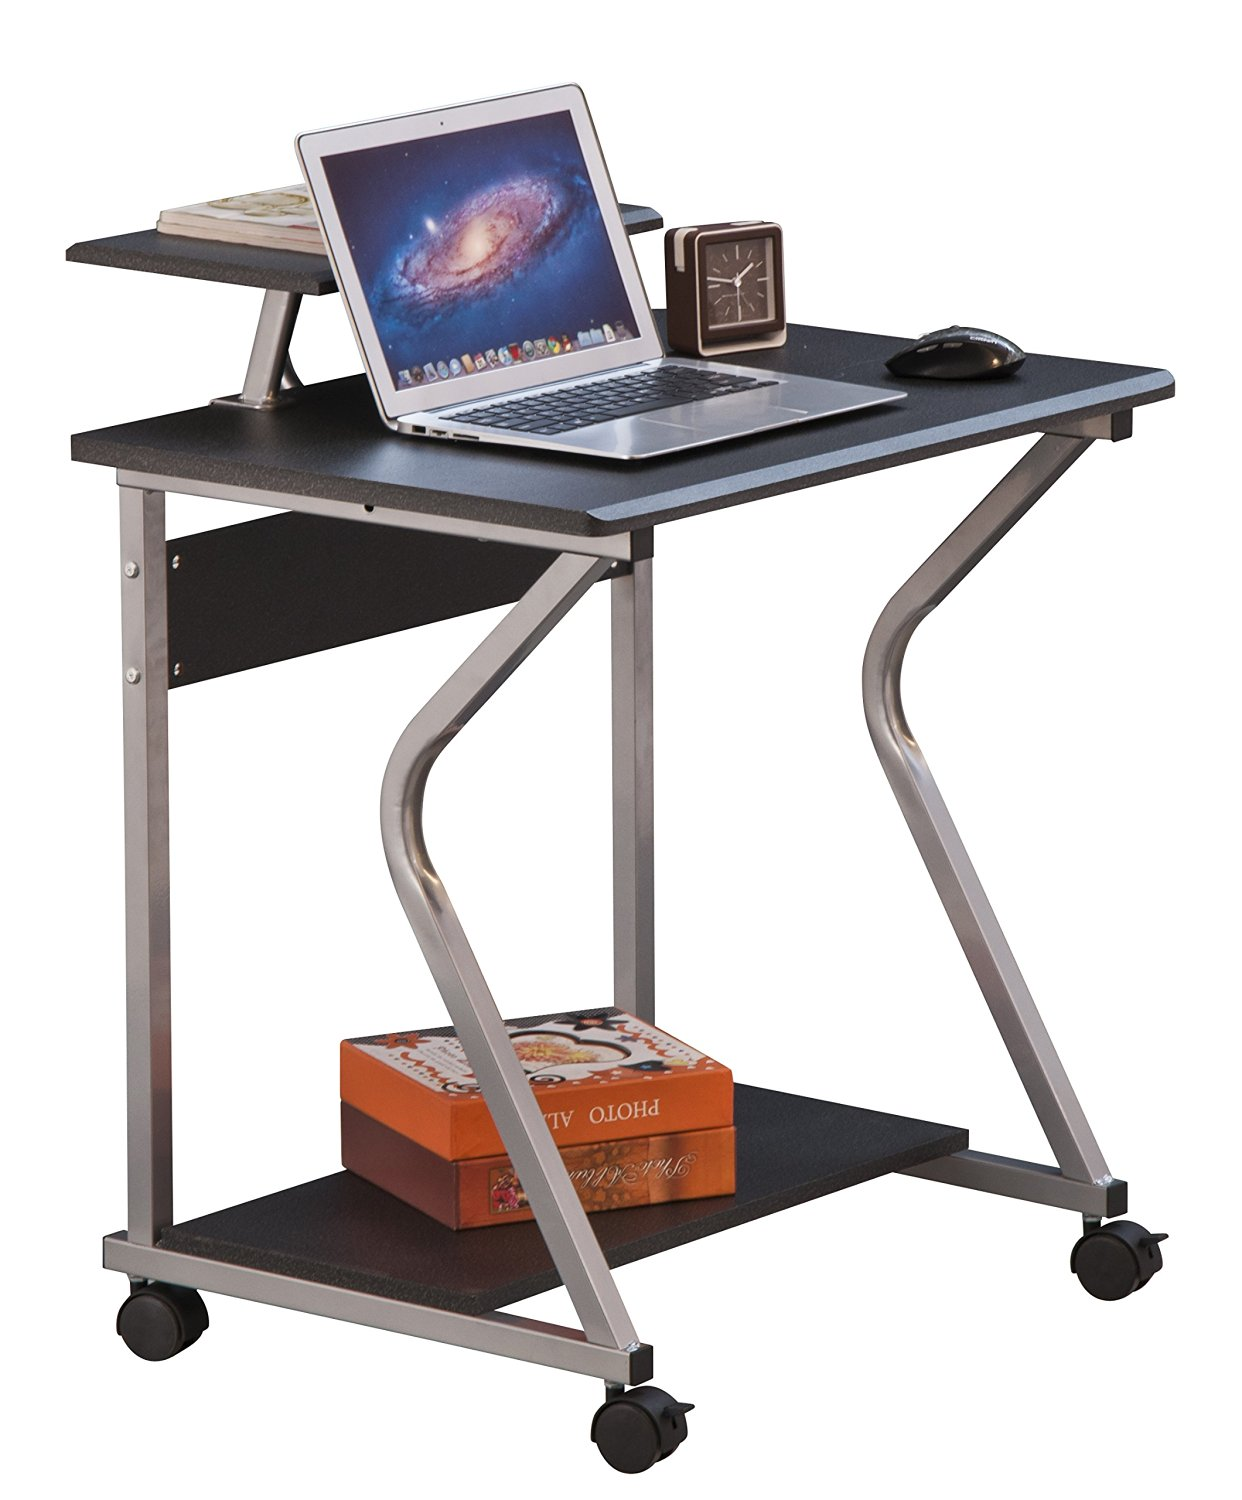 【Lowest Price FIRE SALE】Merax Stylish Design Mobile Home and Office Computer Writing Desk Table ,Student Desk,texture Black